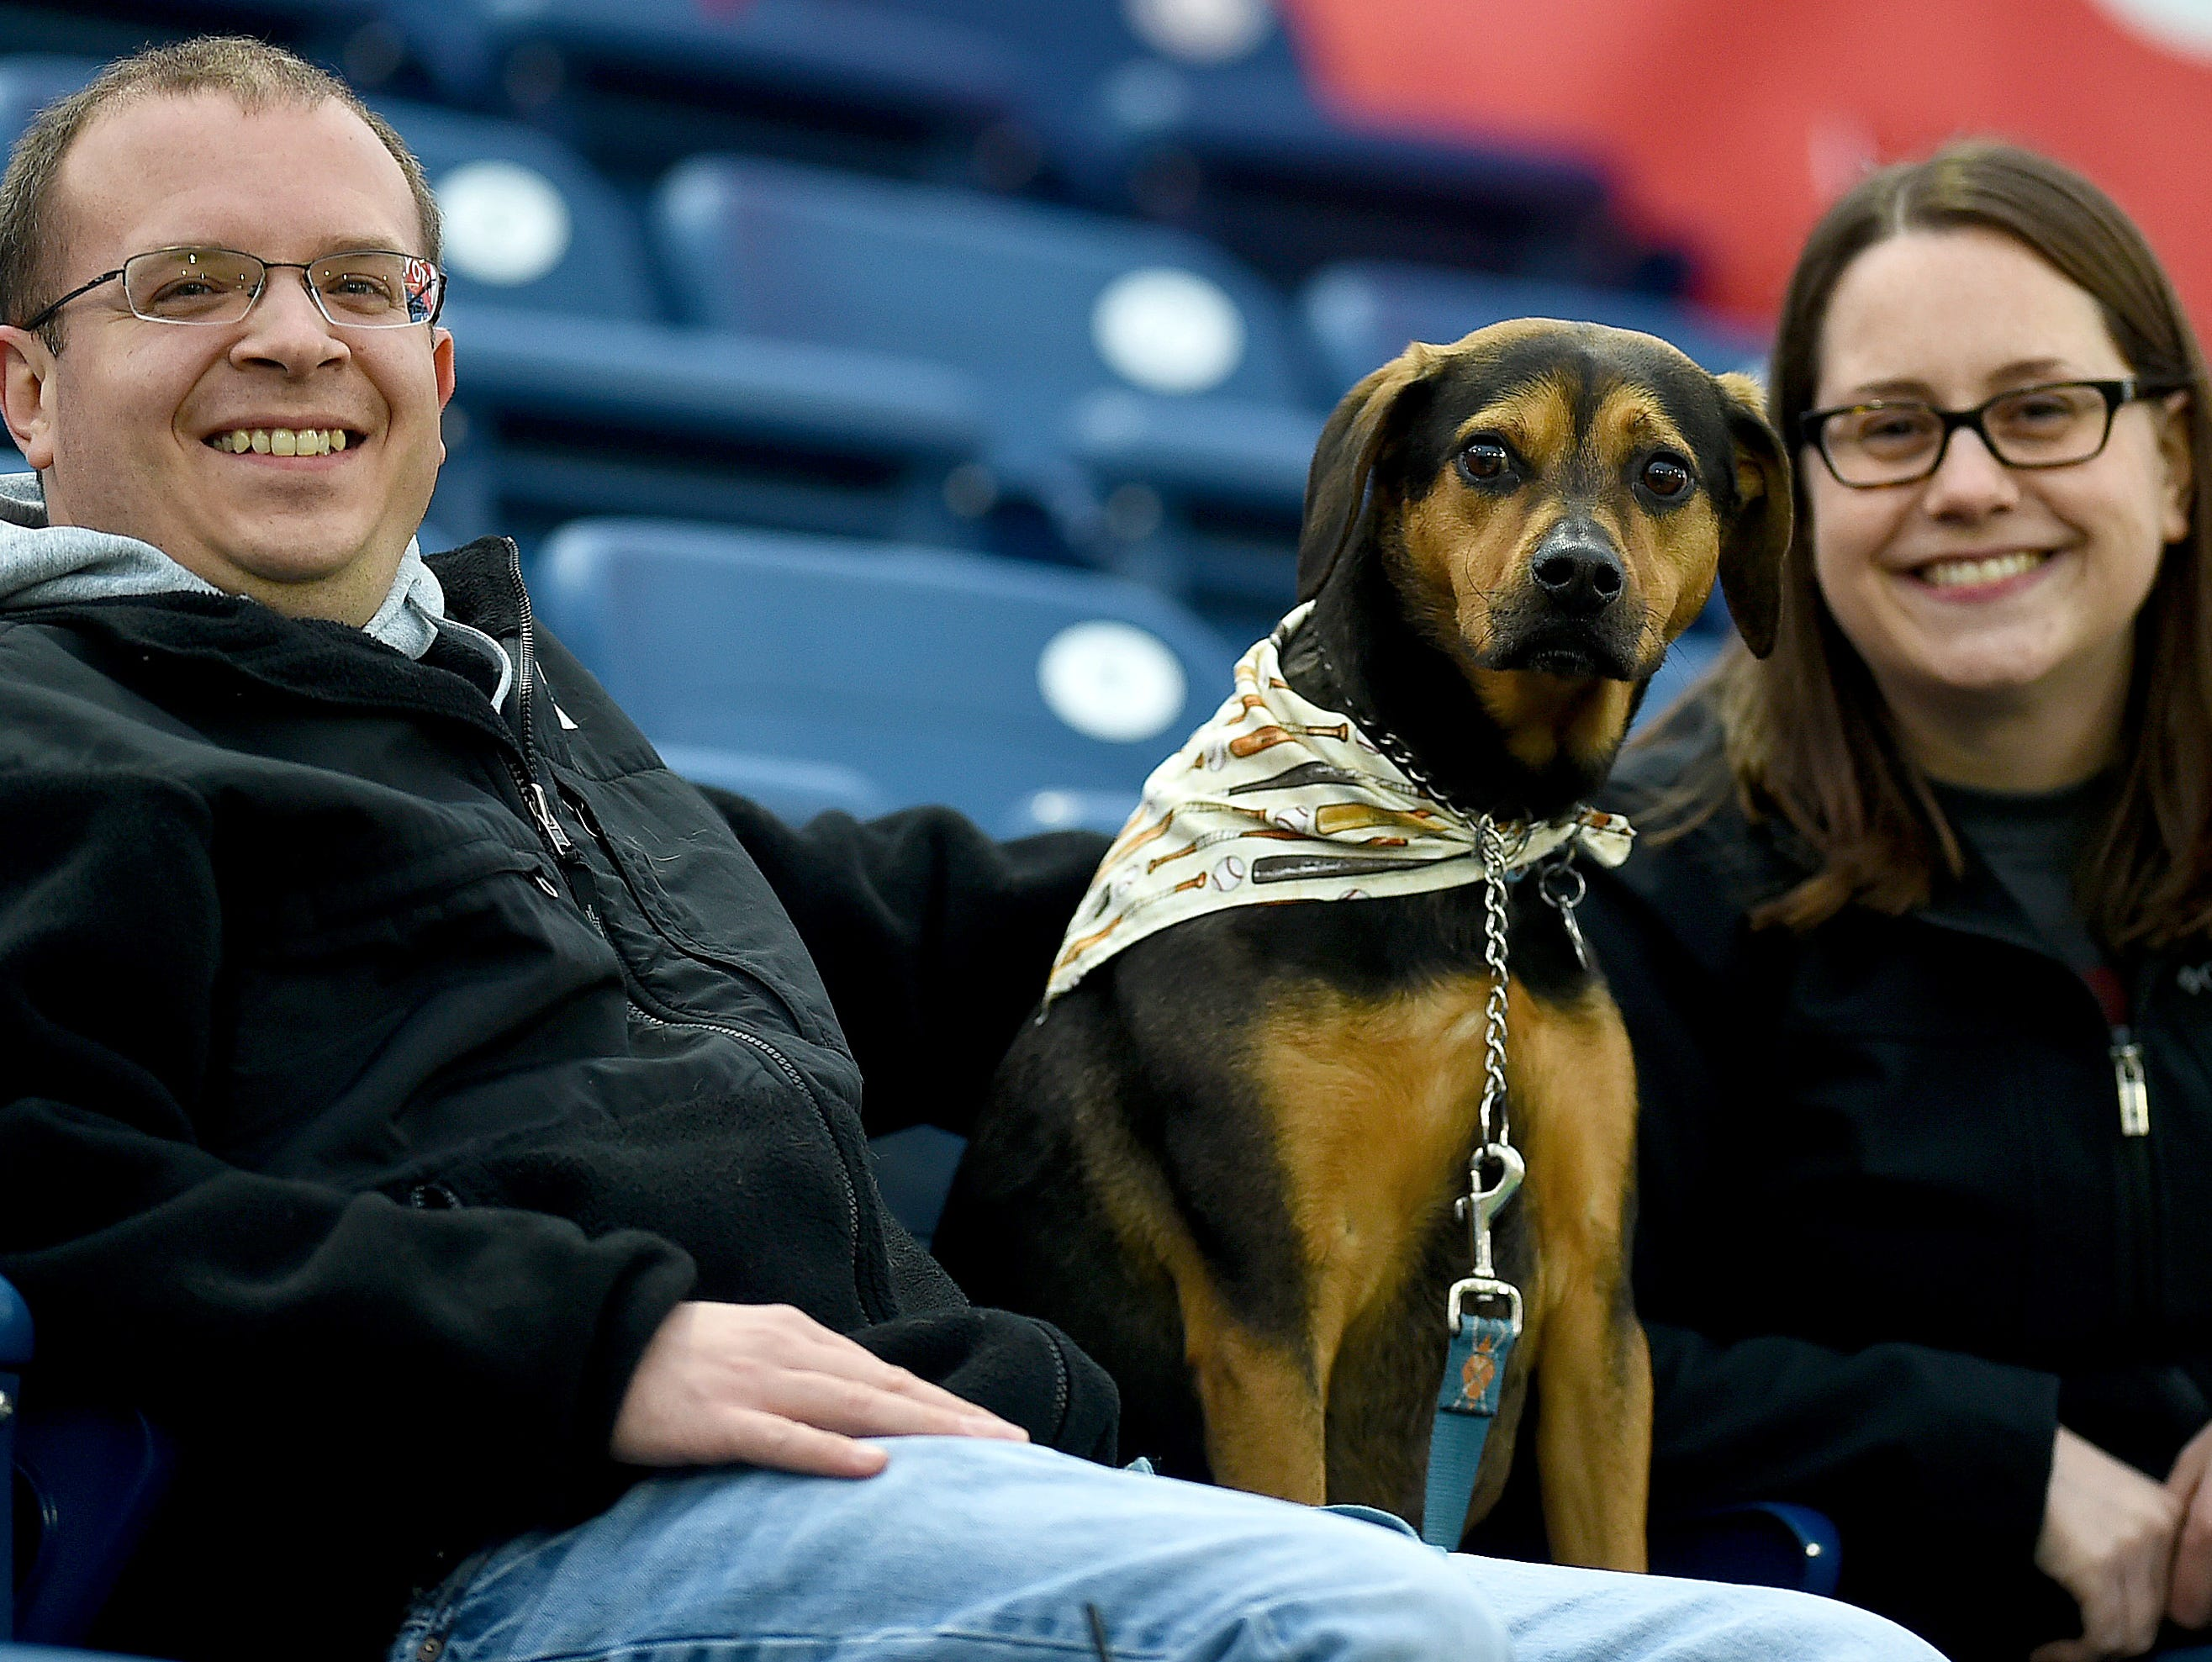 Nick and Megan Hagerbaumer of Binghamton with their dog Petey at Mutt Monday as the Binghamton Rumble Ponies take on the Akron RubberDucks at NYSEG Stadium, April 29, 2019.